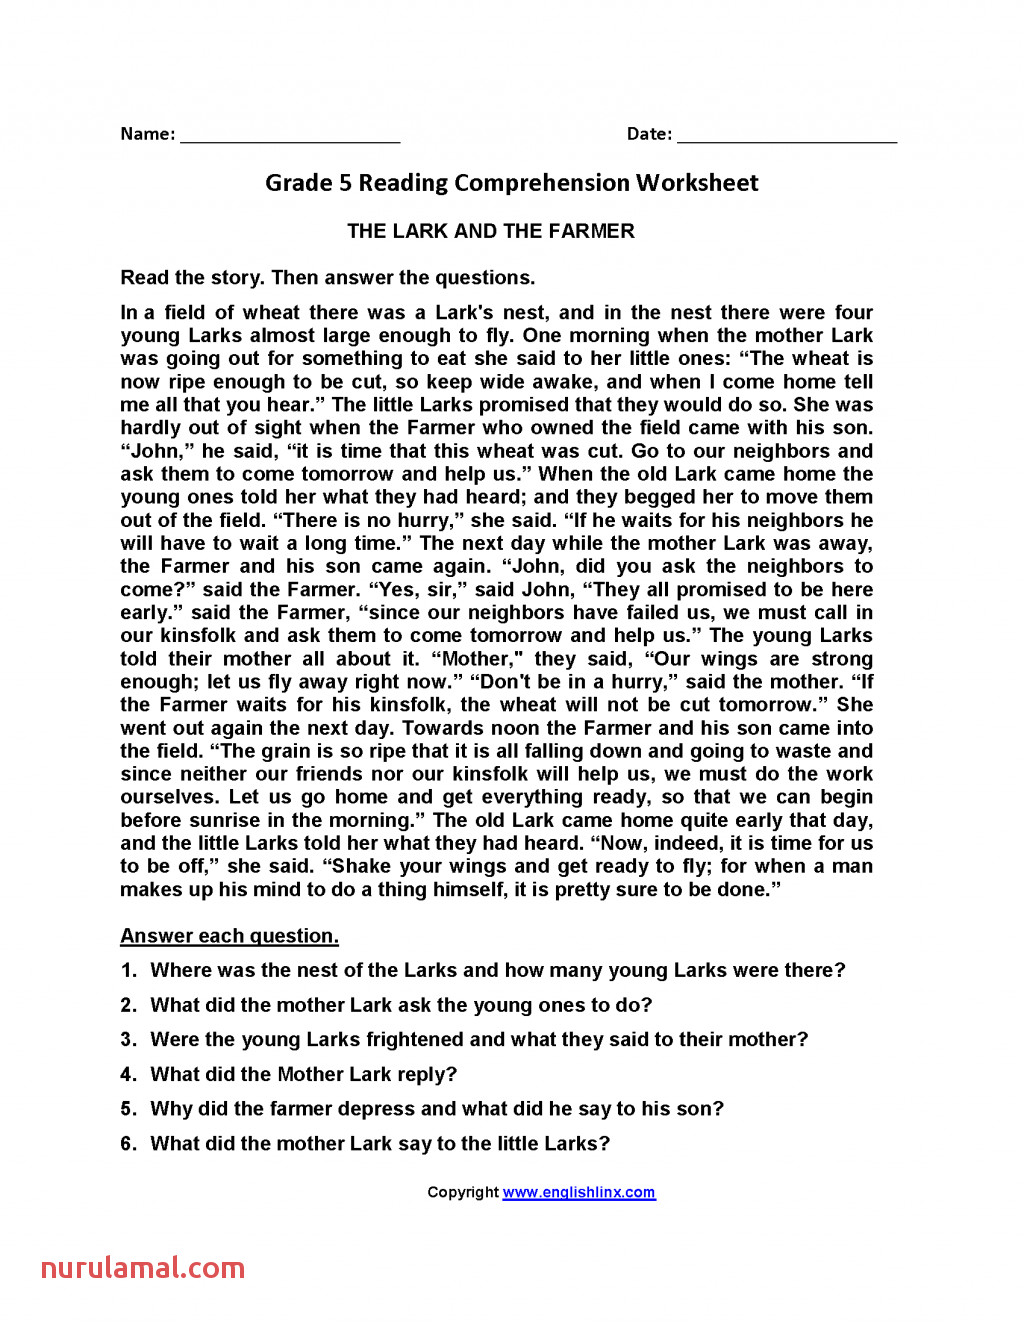 Worksheet Ideas Short Reading Prehension with Questions